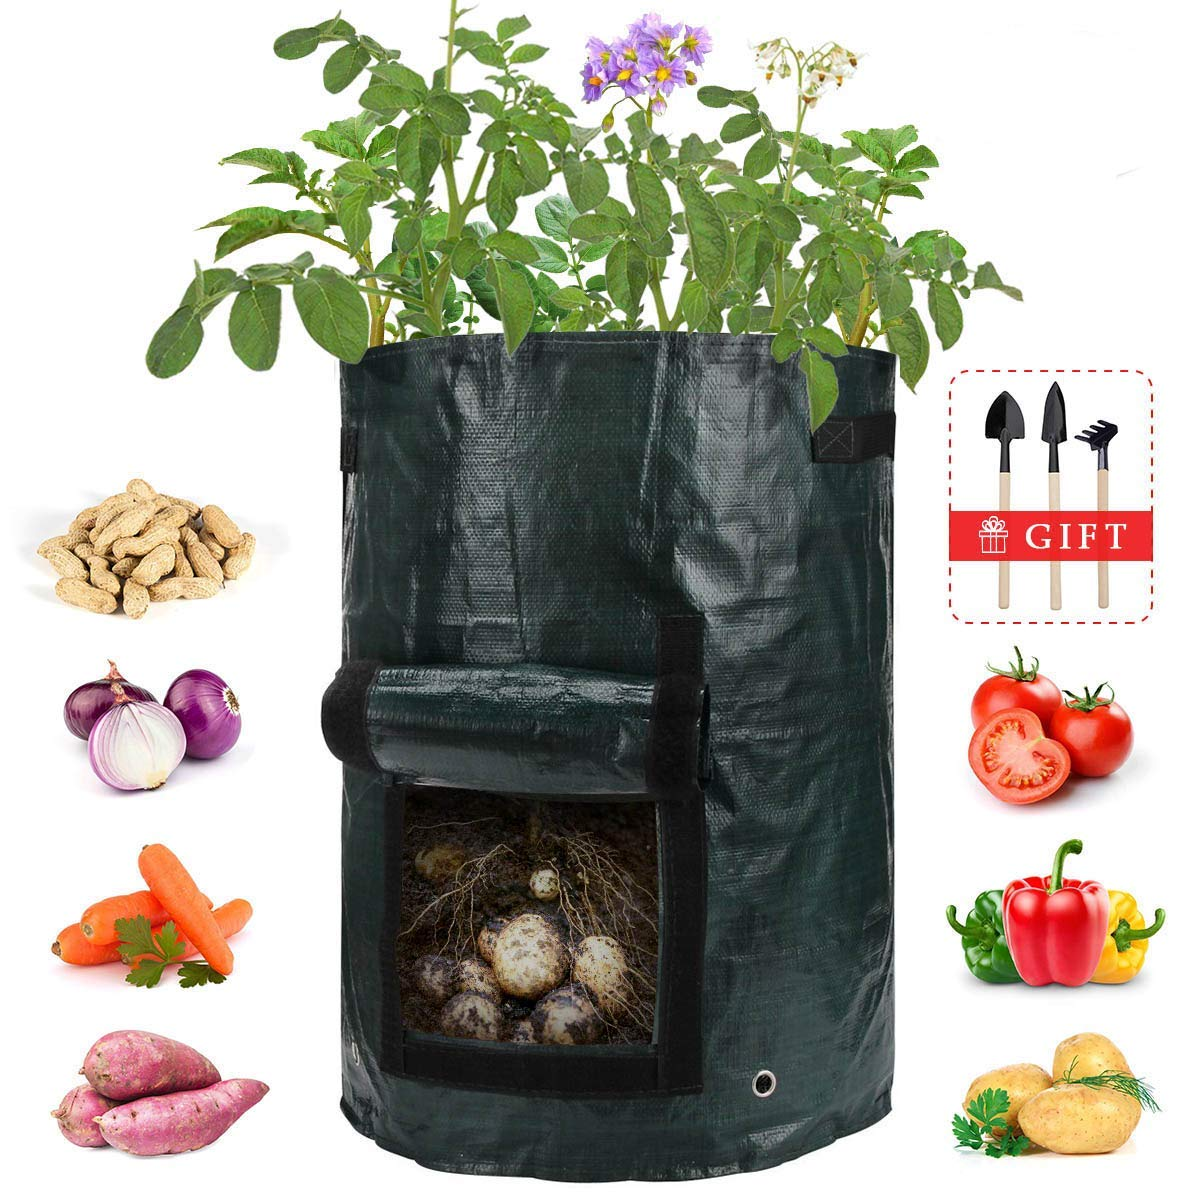 Cenfenner 2 Pack Garden Planter Bag, 7 Gallon Potato Grow Bags with Access Flap and Handles, Durable Raised Garden Bed for Planting Vegetables, Potatos, Tomatos, Carrots, Onions